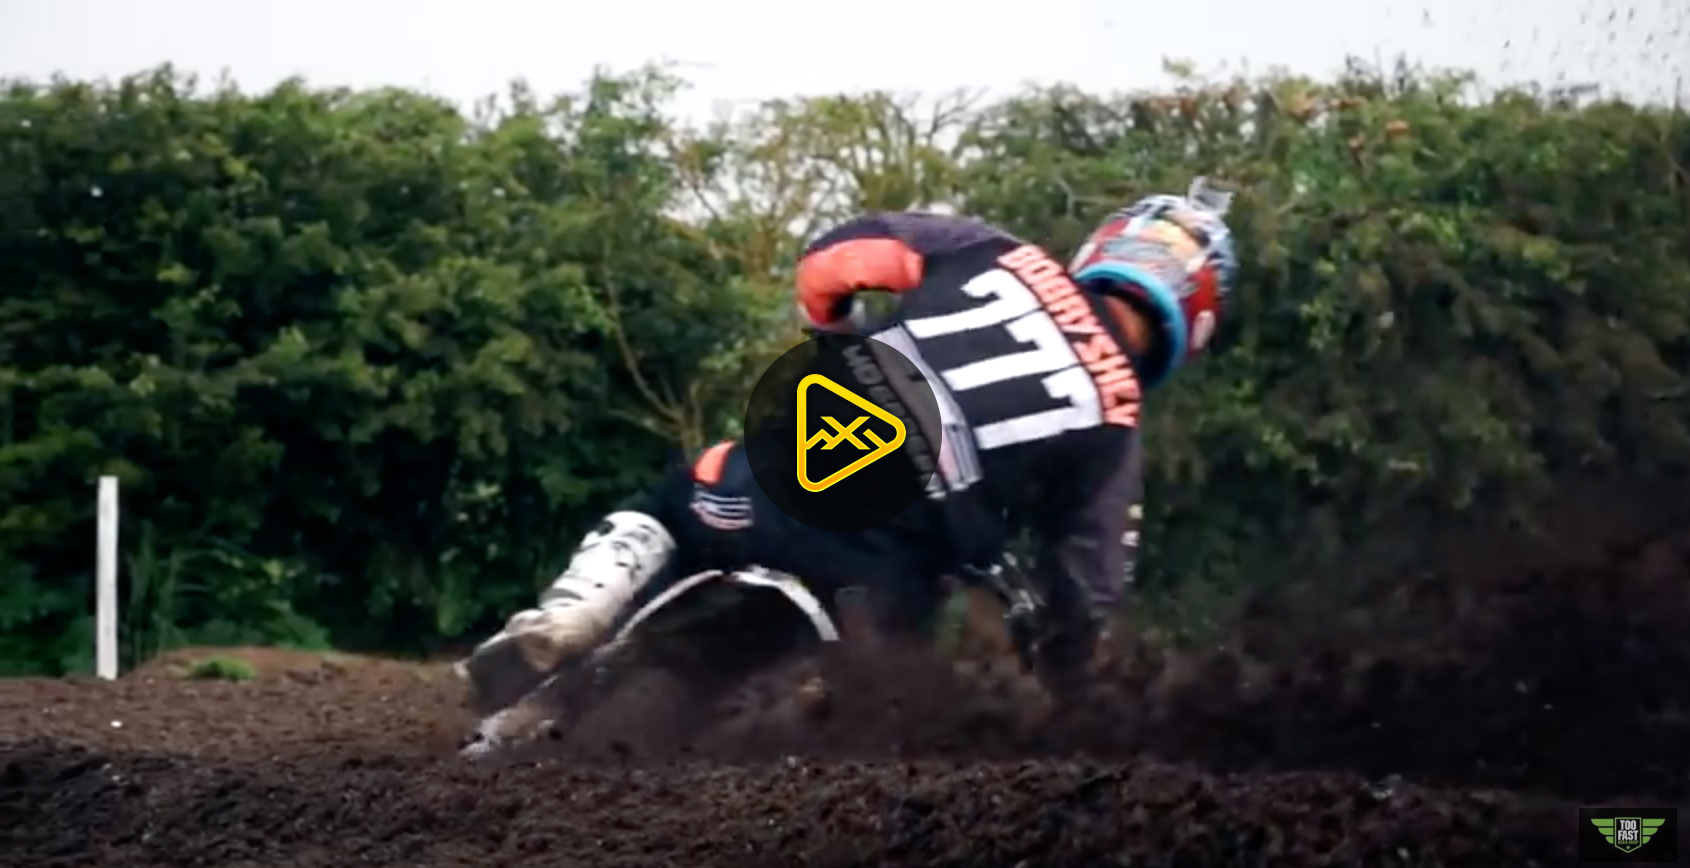 MXGP Star, Evgeny Bobryshev Shreds Local Track